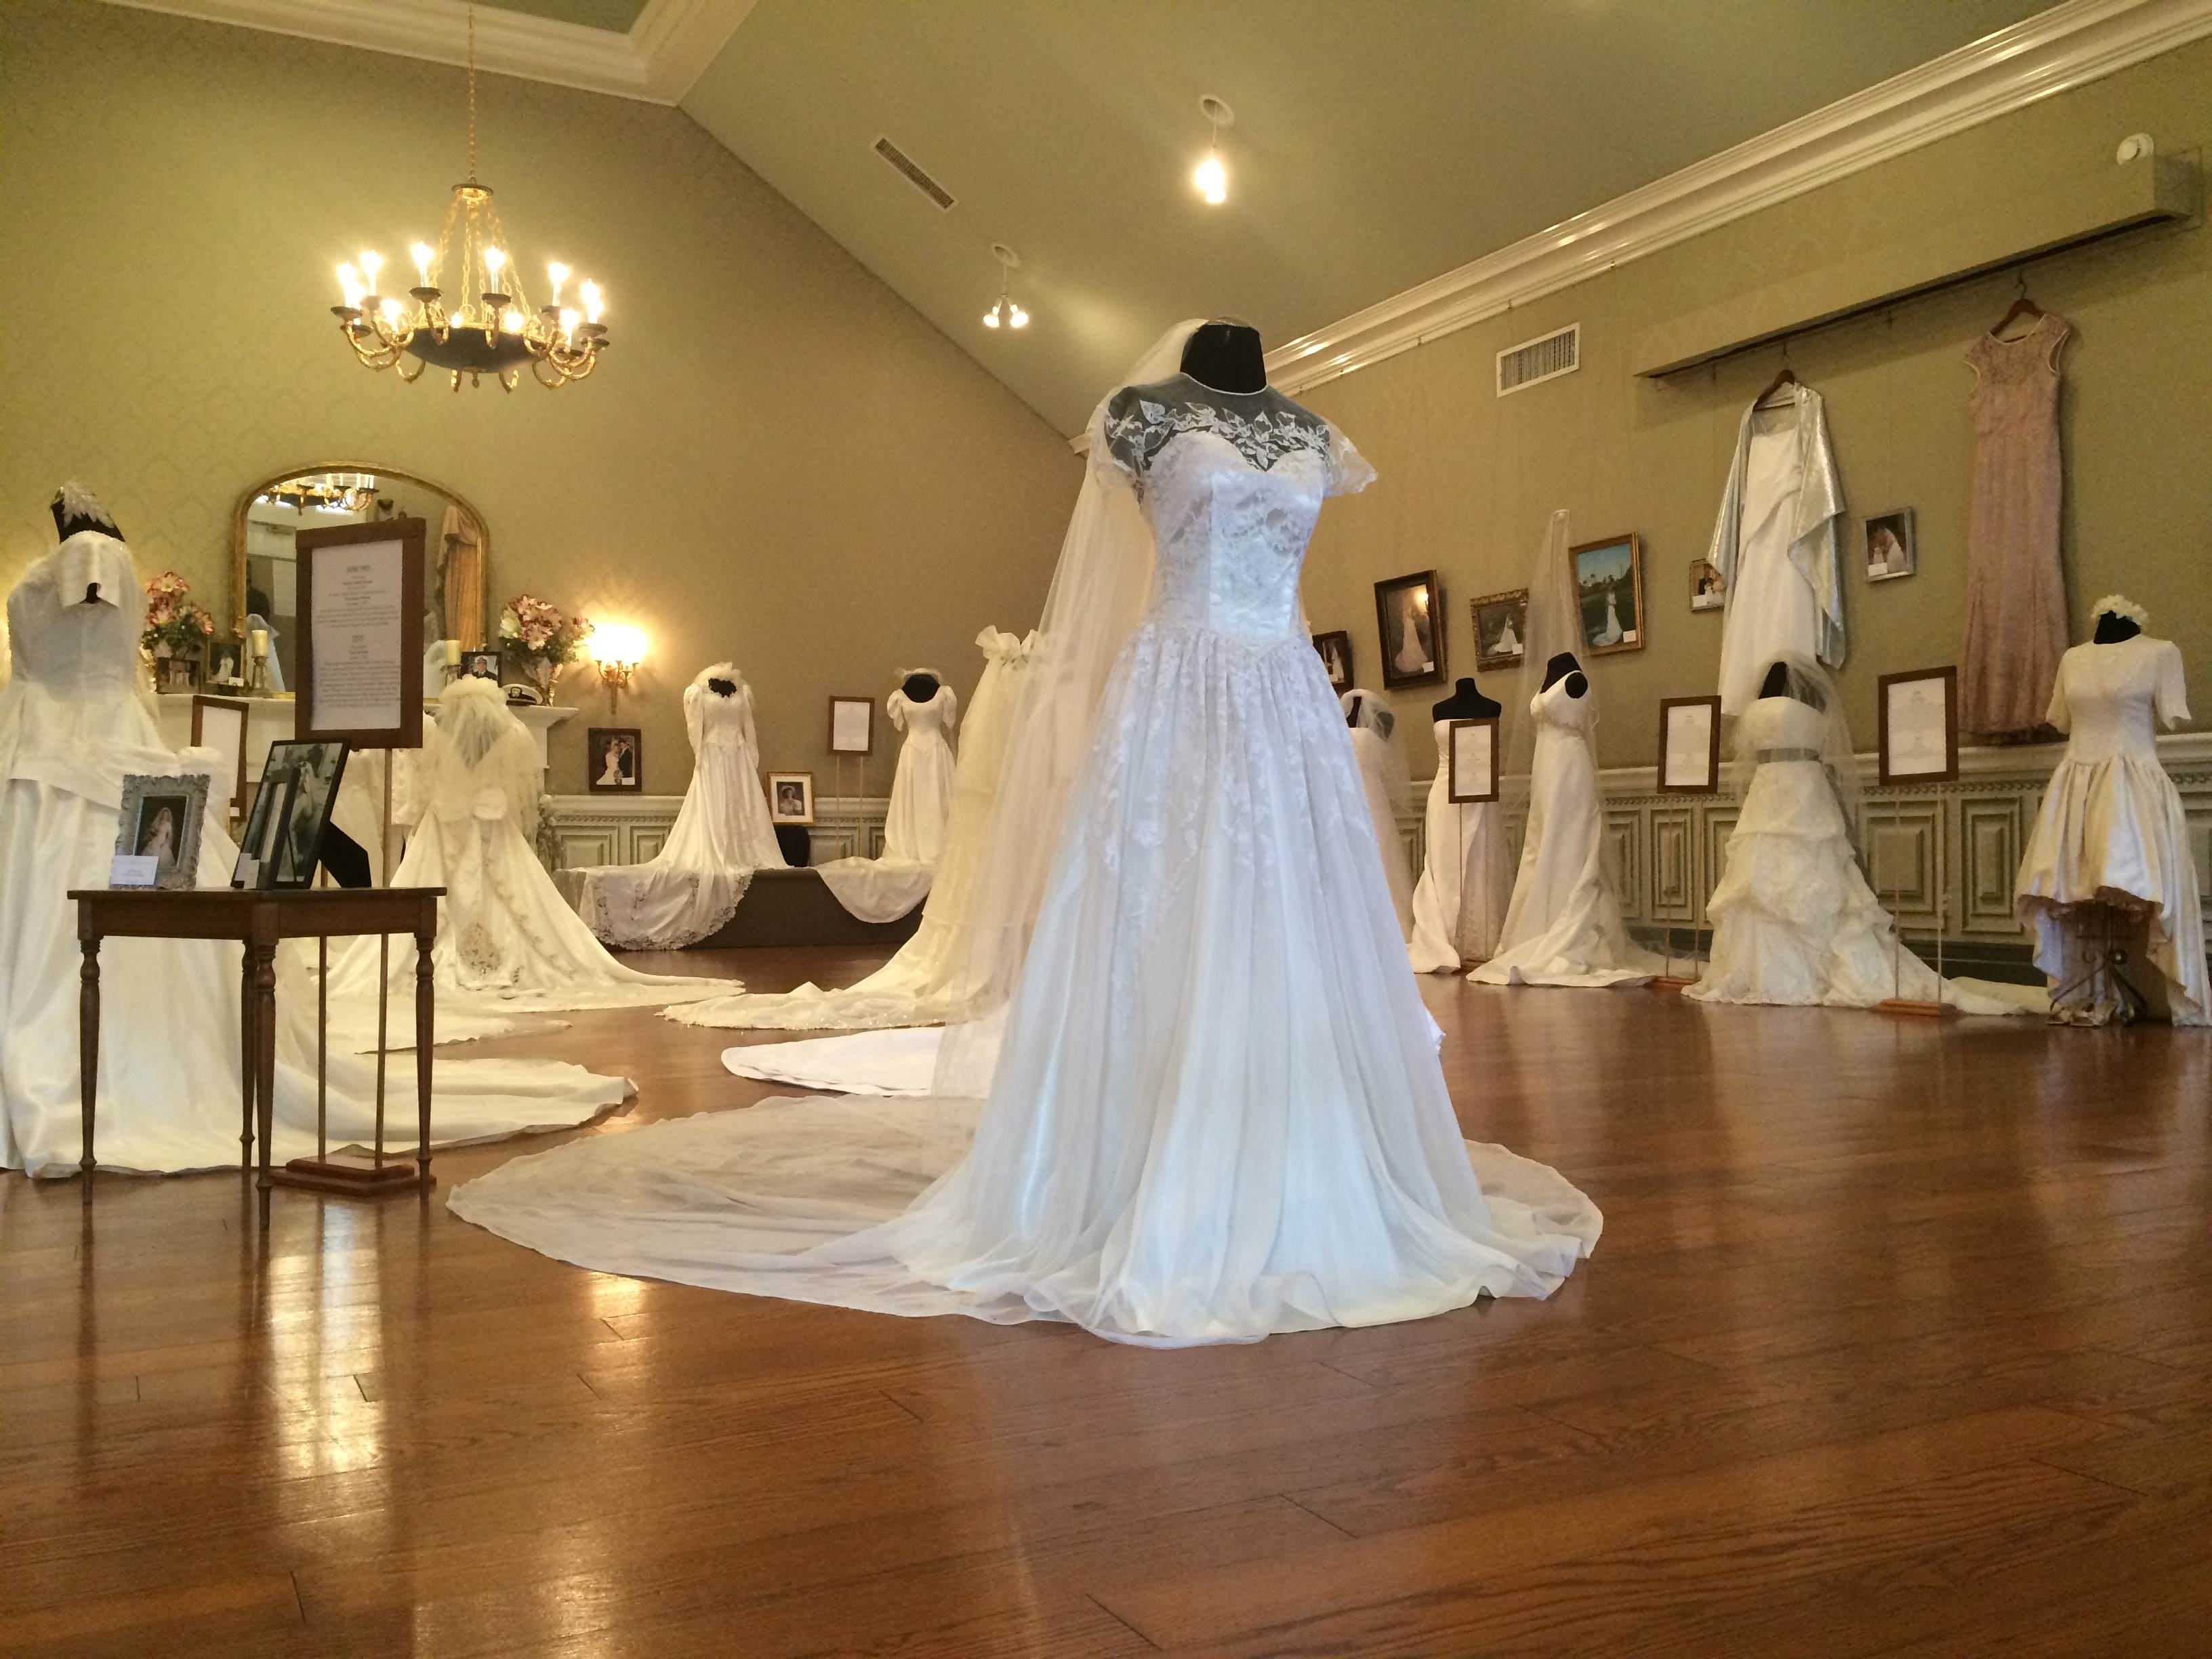 <br><br><br>Wedding Dresses Through the Decades Exhibit<br>January 21-March 5, 2017